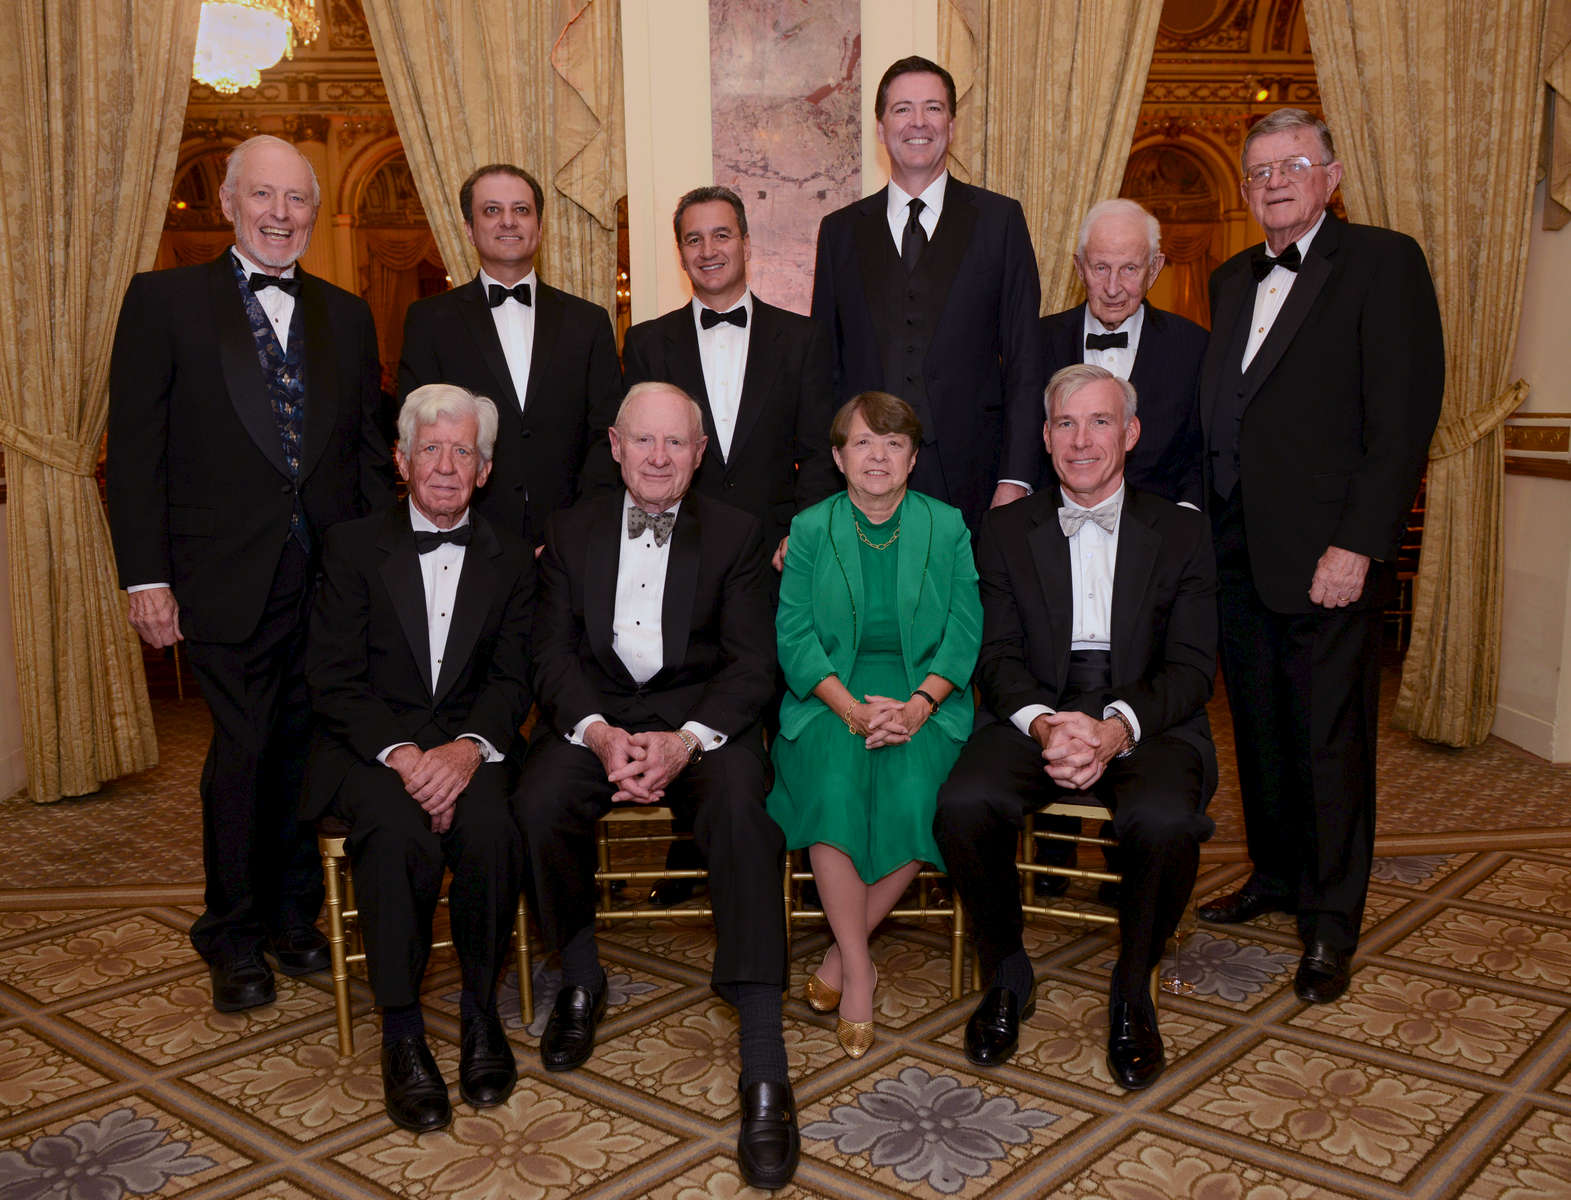 Present and former U. S. Southern District Attorneys of New York, attend the 225th anniversary celebration of the Southern District Office. Standing left to right:  Otto Obermaier; Preet Bharara; Michael Garcia; James Comey; Robert Morgenthau; John Martin.Seated: Thomas Cahill; Robert Fiske; Mary Jo White; Patrick Kelley – Plaza Hotel, September, 2014